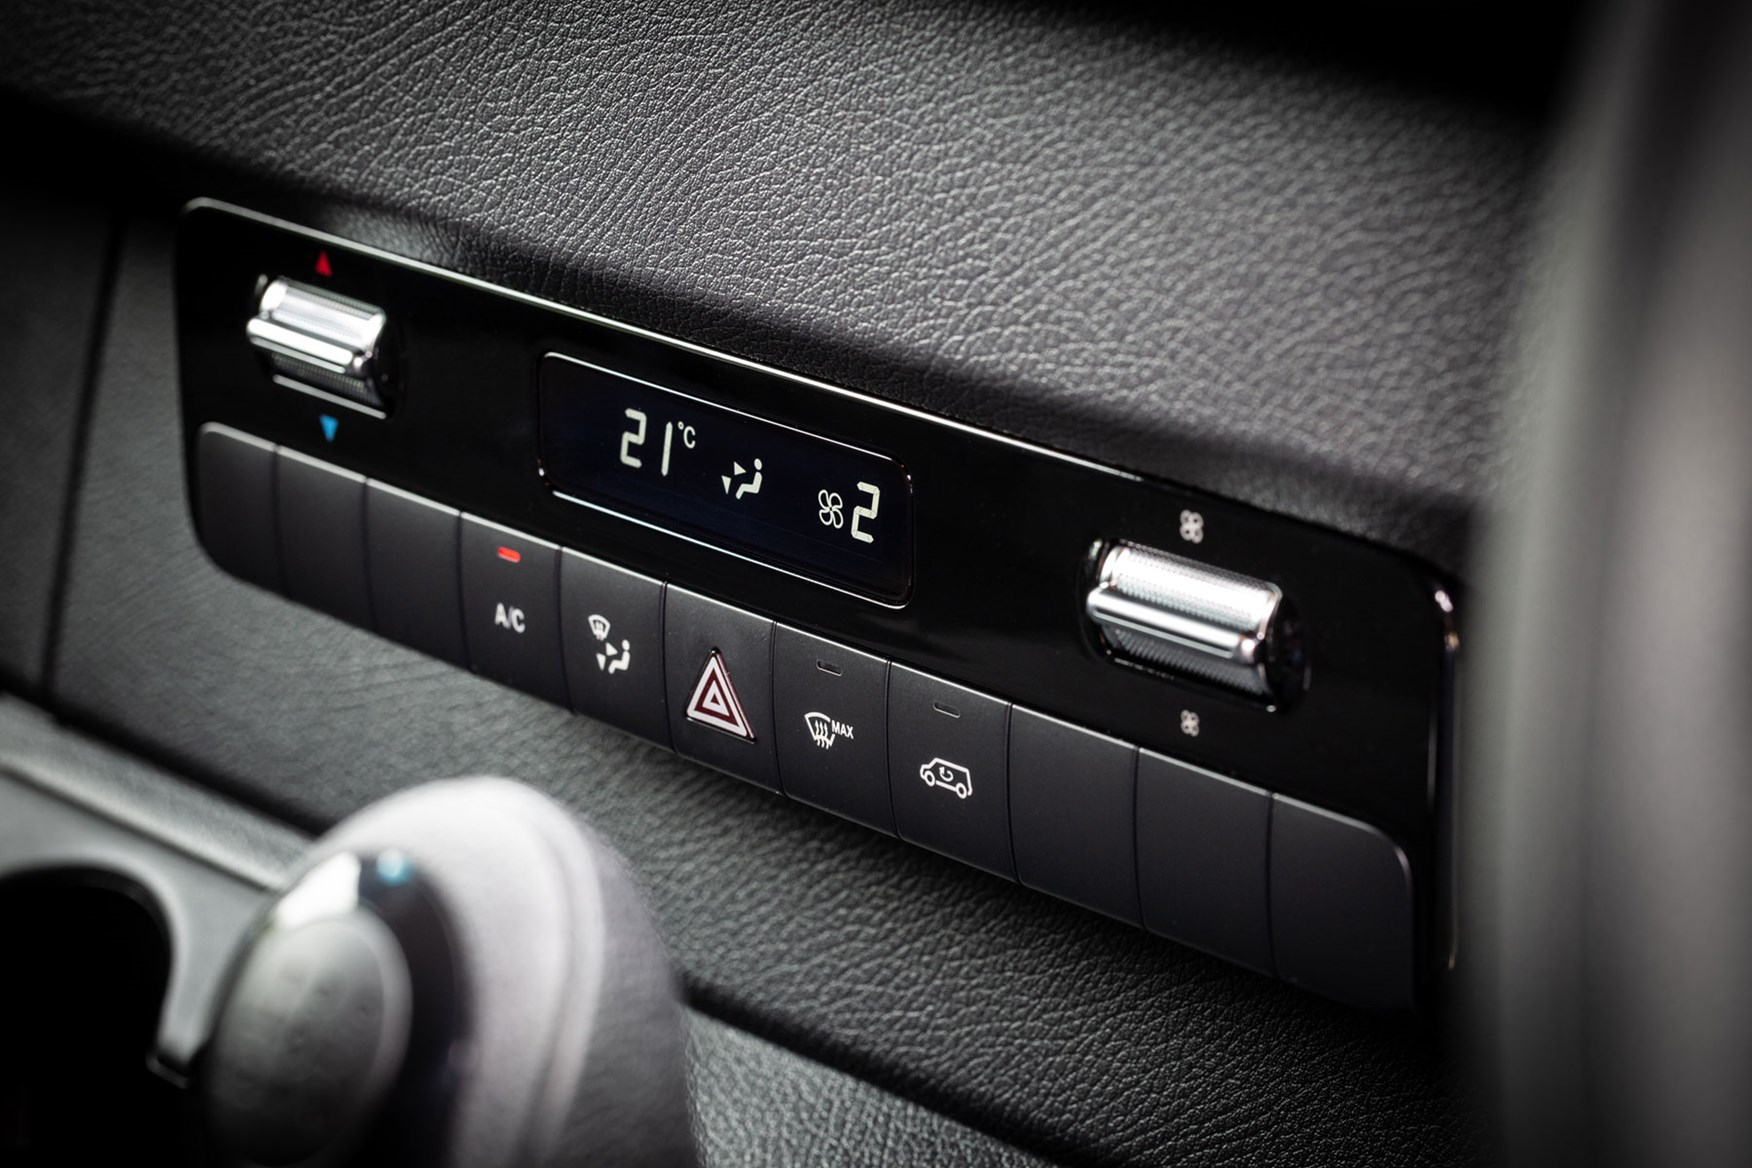 Mercedes Sprinter (2018-on) air-conditioning controls